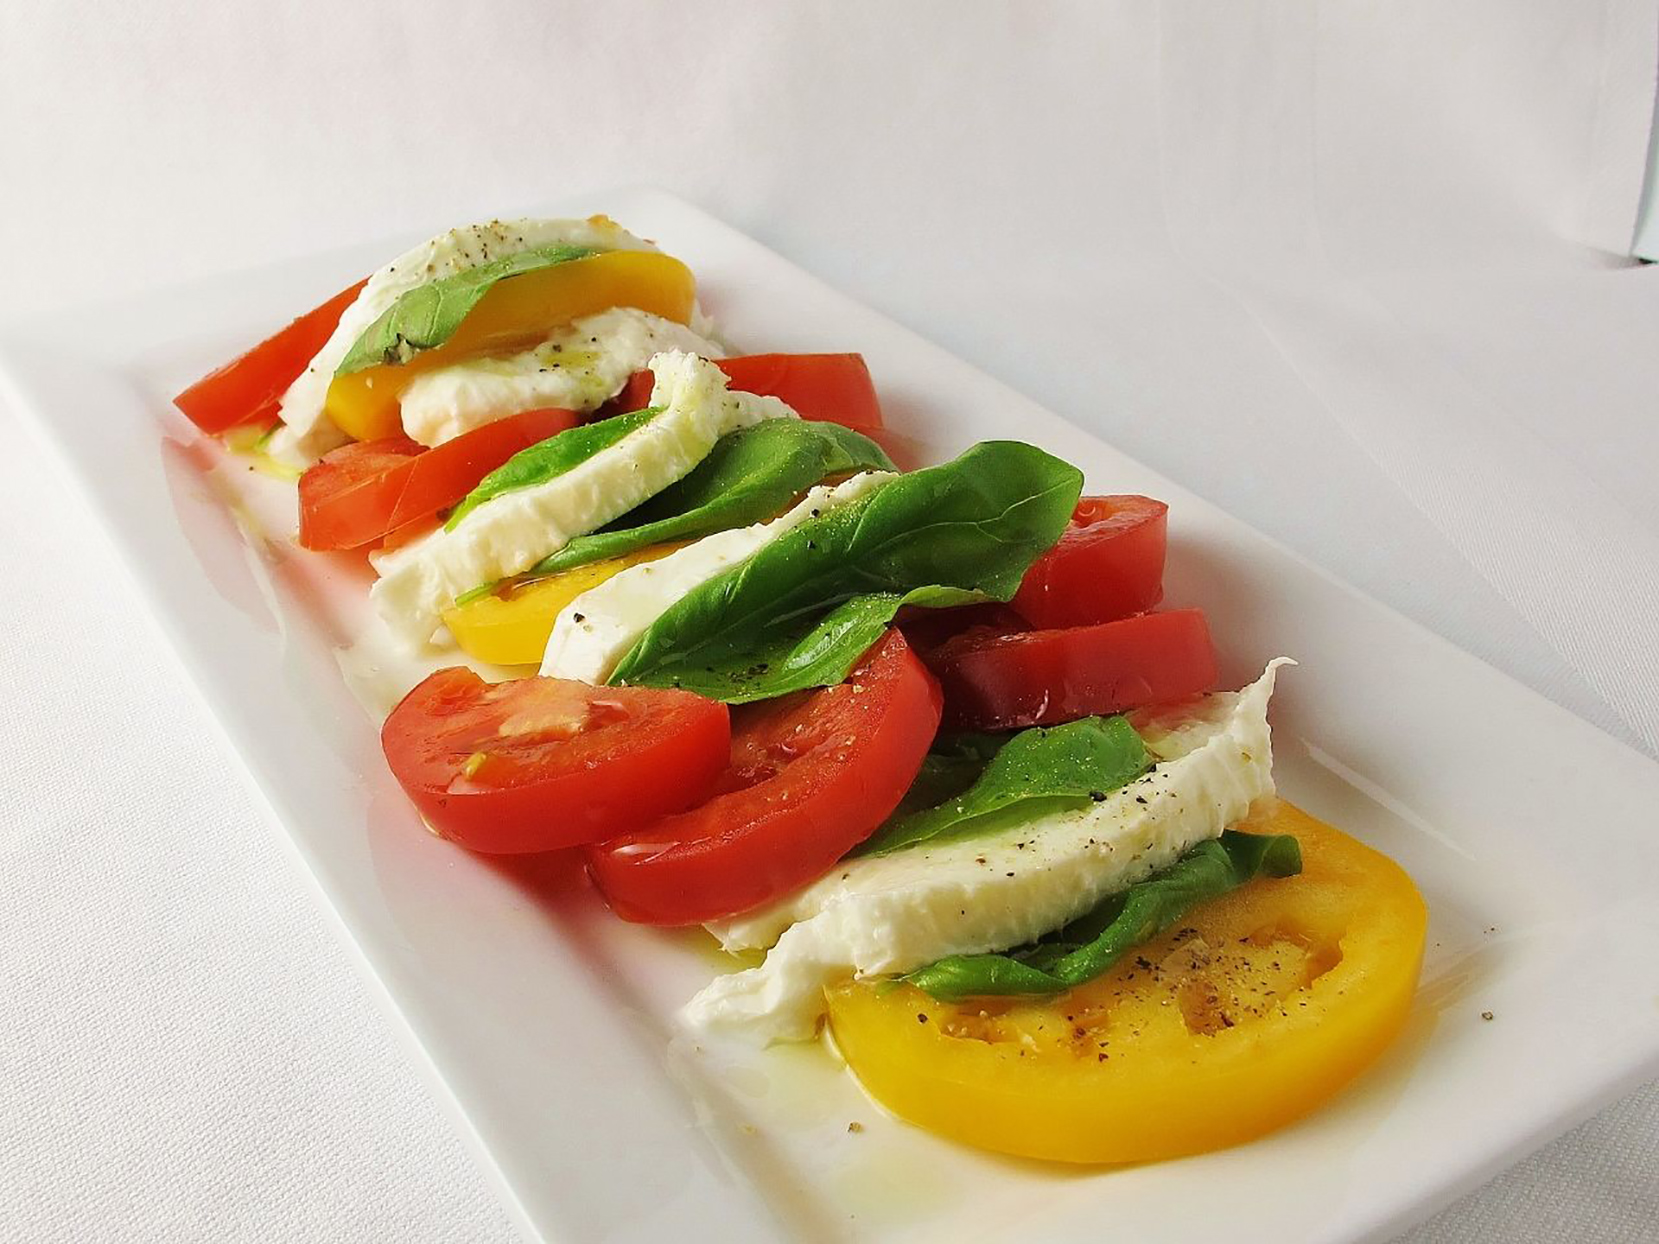 Slices of ripe red and yellow tomatoes alternating with fresh mozzarella and basil